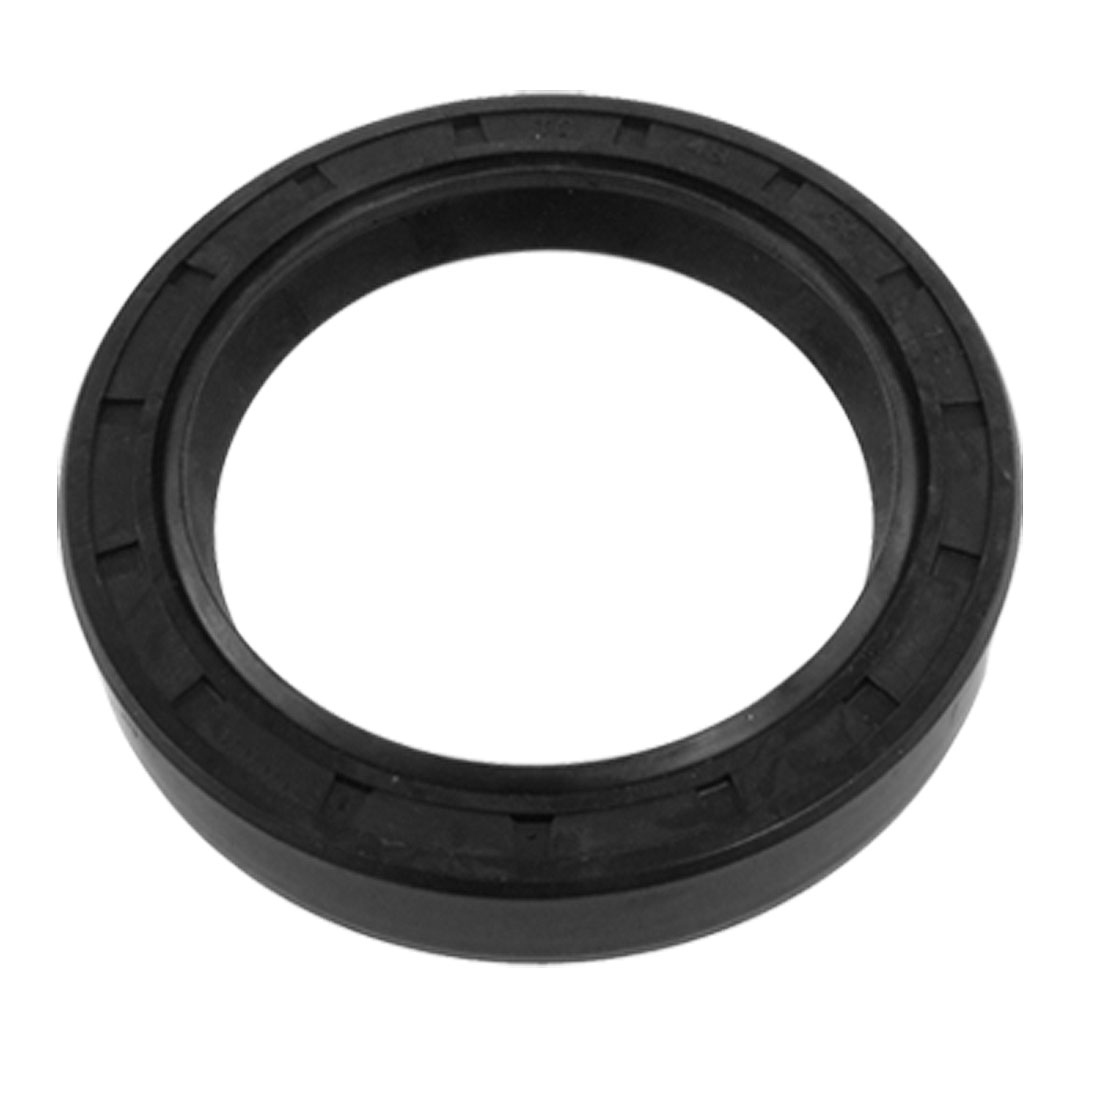 Metric Shaft Spring Loaded 48mm x 65mm x 12mm Oil Seal Black